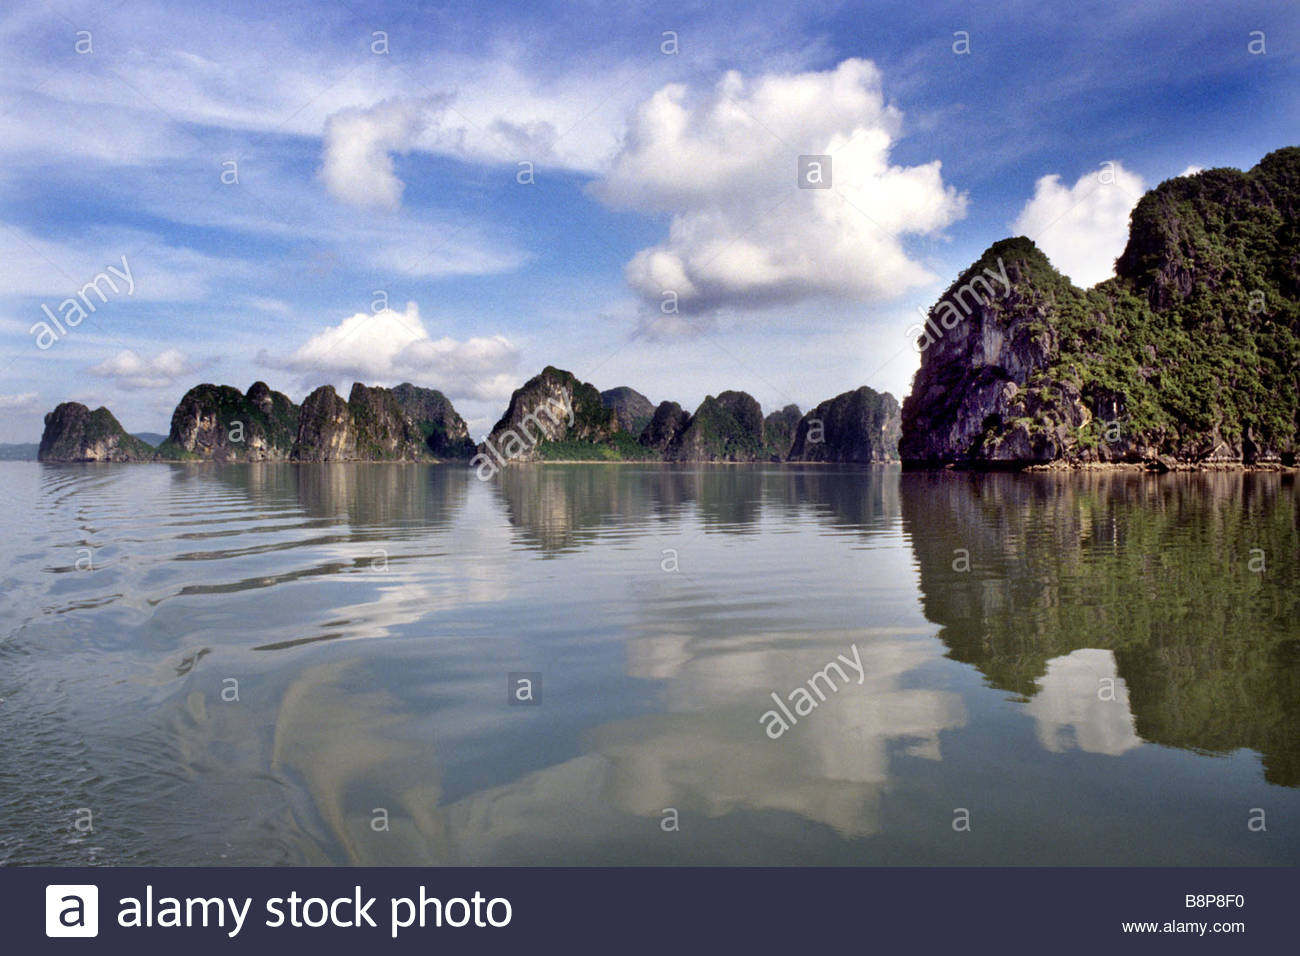 La baie d'Halong, Vietnam, Asie du sud-est Photo Stock